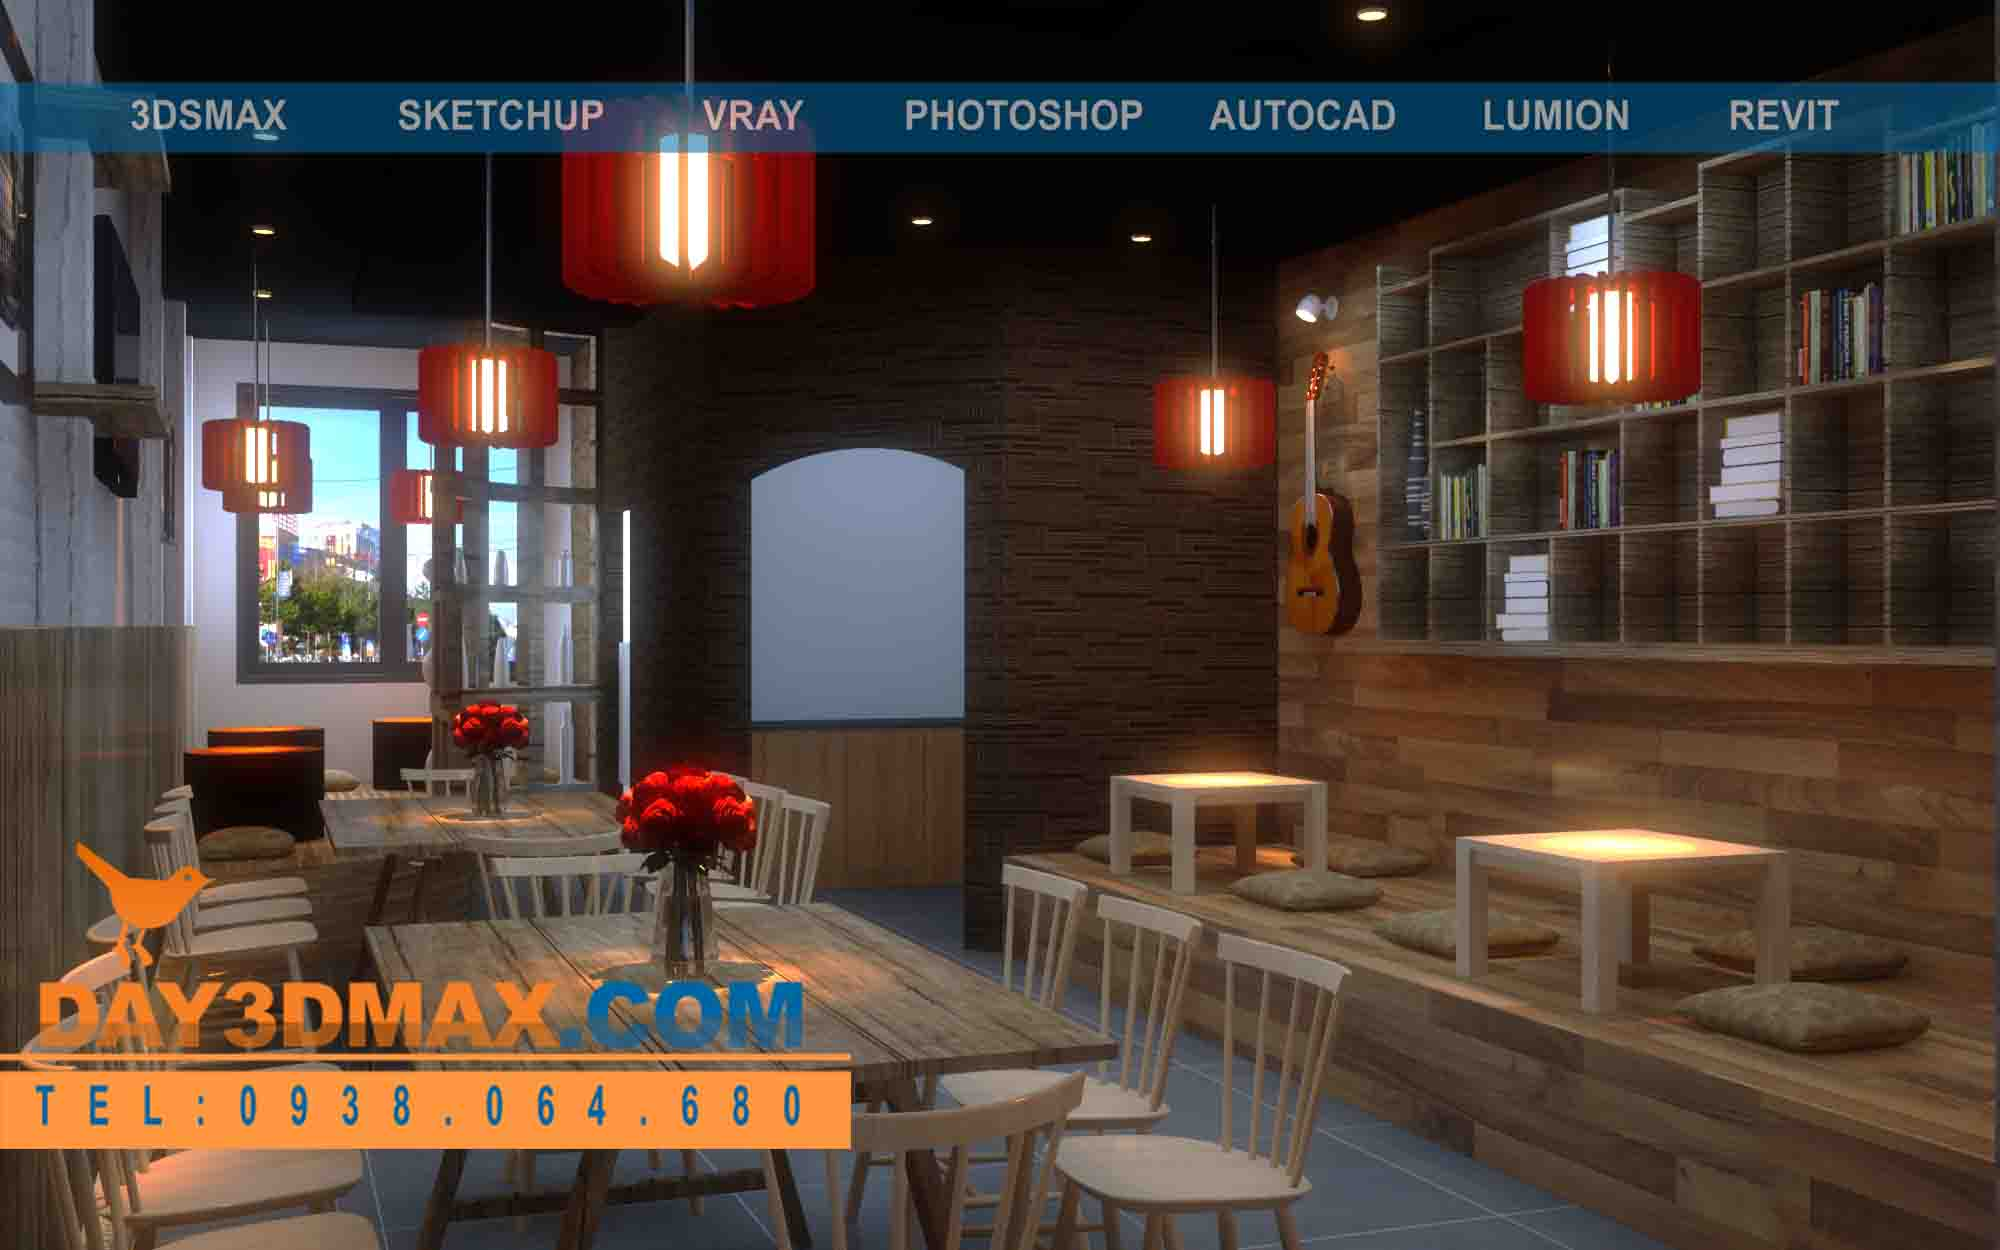 Online 3d Courses Model And Render An Interior Of A Coffee Shop With Autocad Sketchup 3dsmax Vray Photoshop